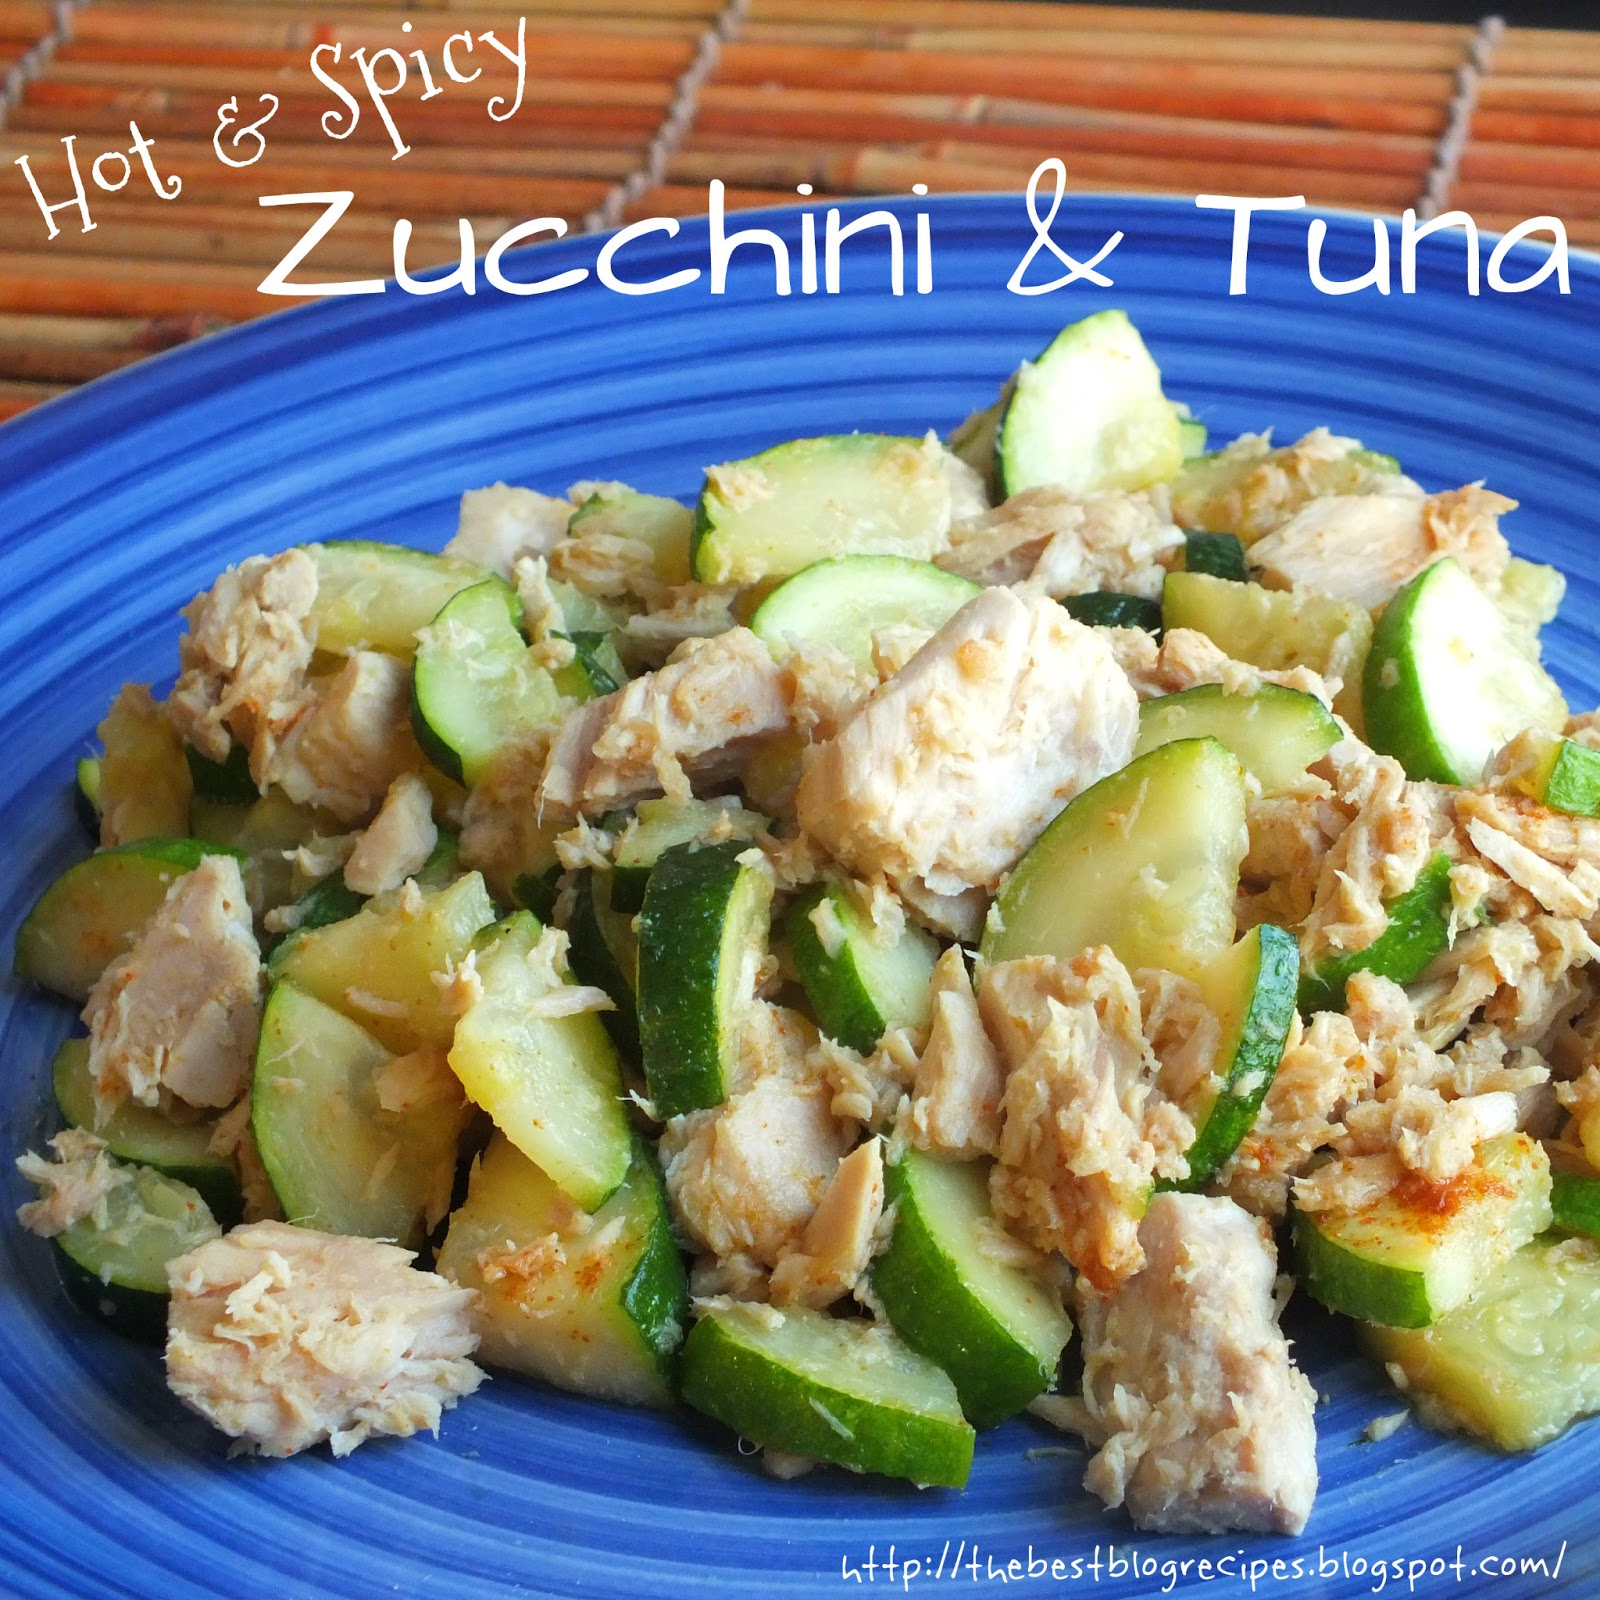 Healthy Zucchini & Tuna recipe from {The Best Blog Recies}